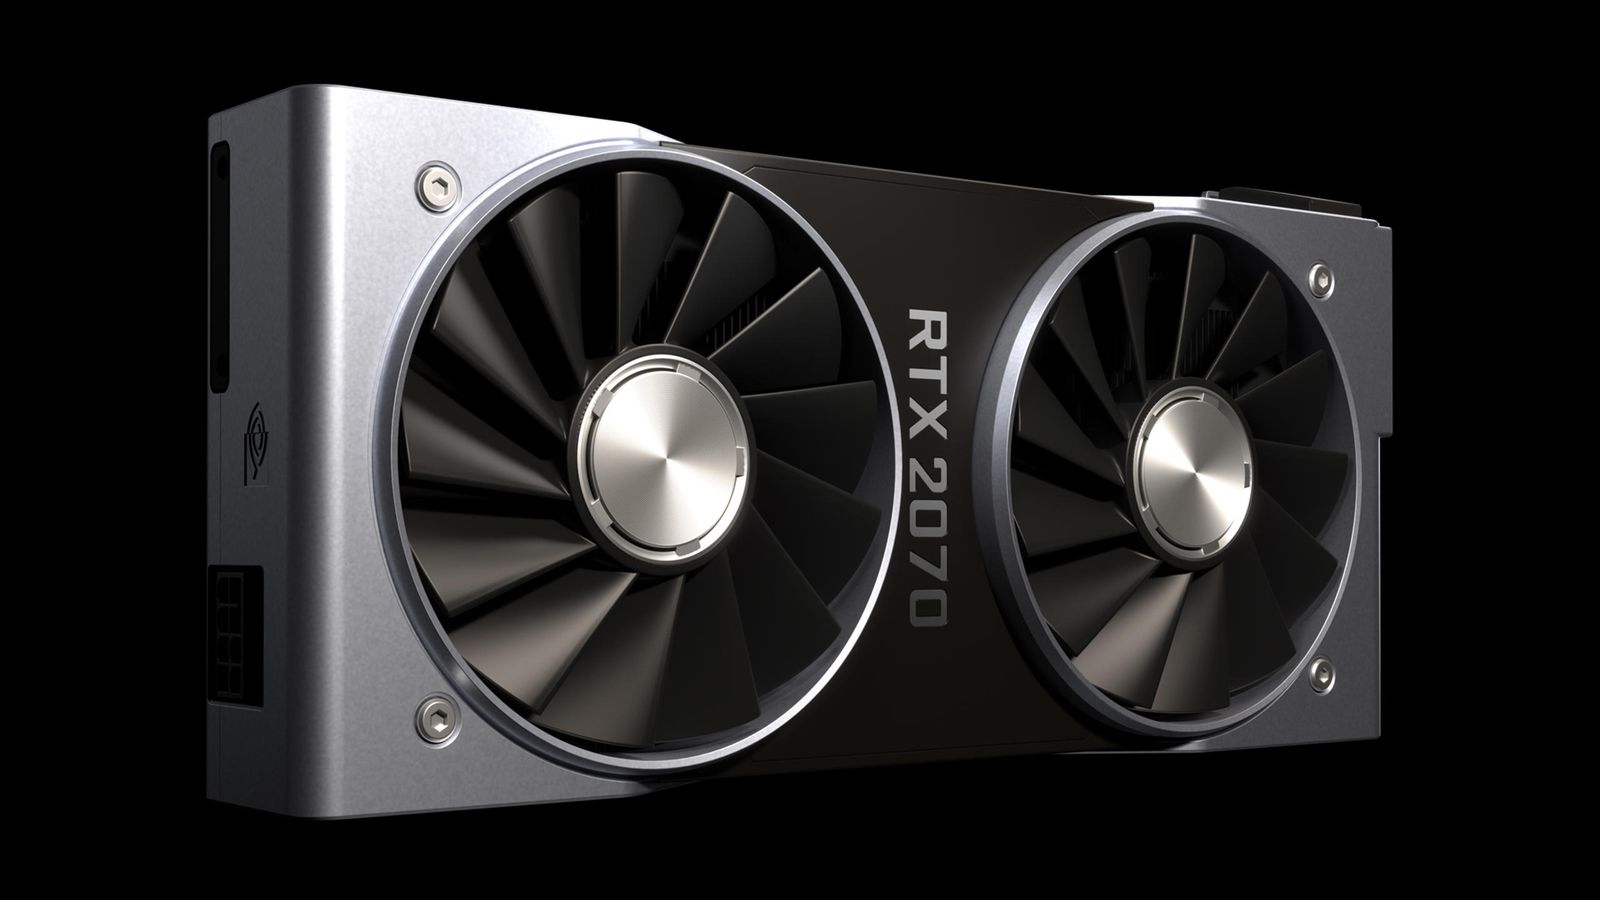 News: Nvidia's Turing successor is called Ampere, built on 7nm